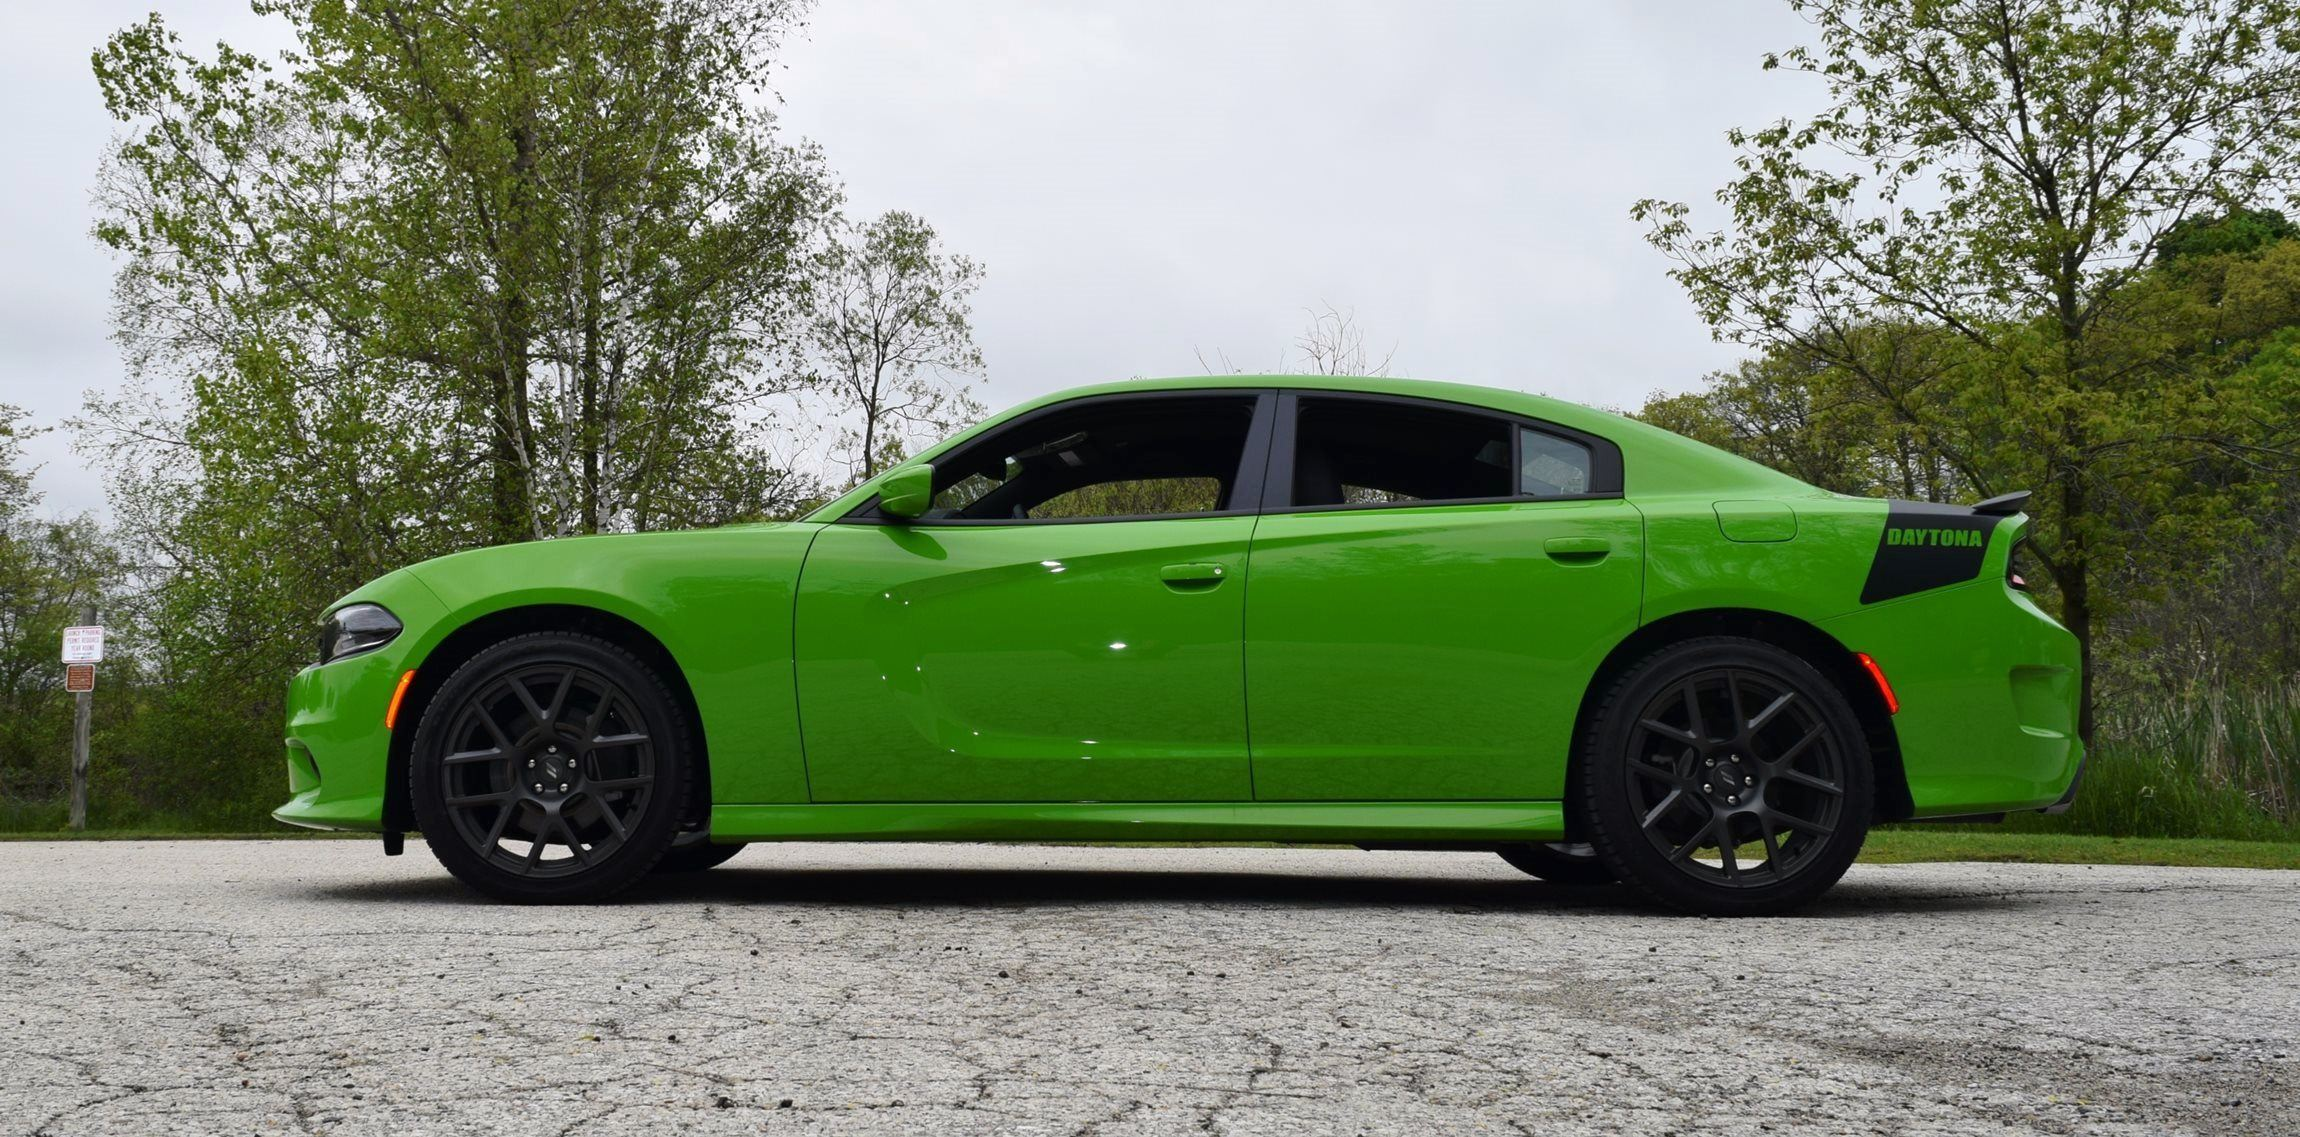 Dodge Charger Hellcat Price >> 2017 Dodge Charger DAYTONA - First Drive w/ Active Exhaust ...